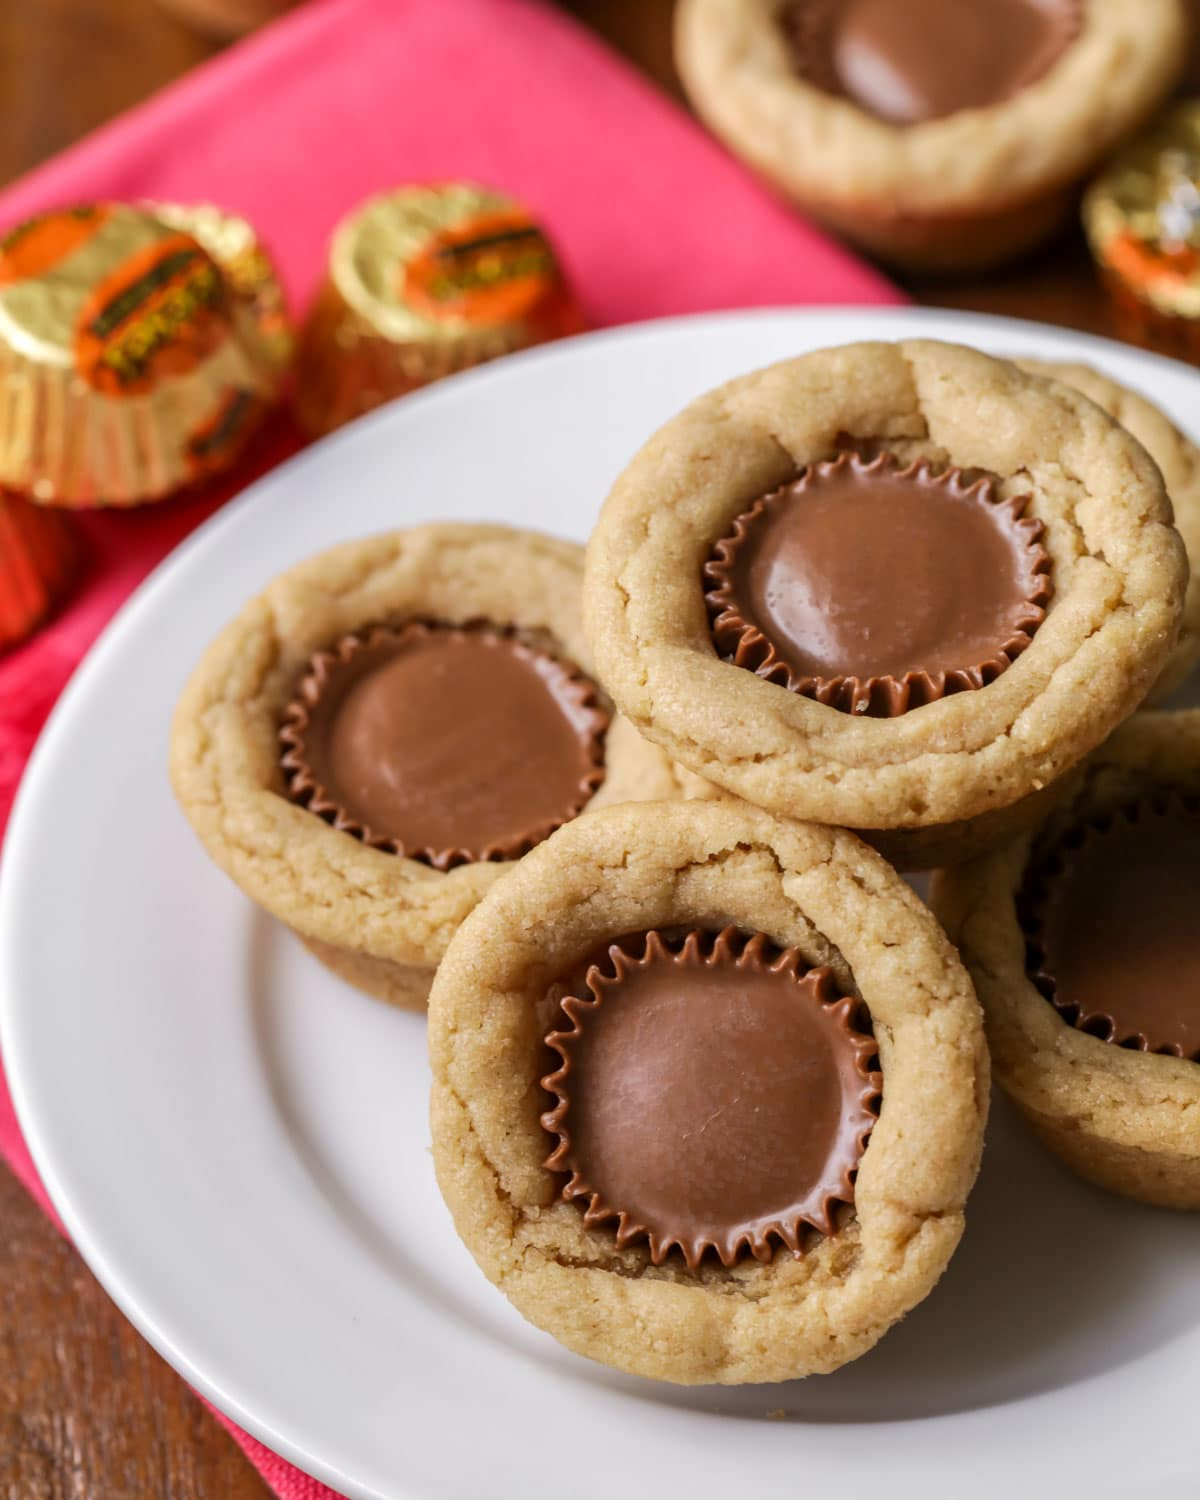 Reese's cup cookies stacked on a white plate